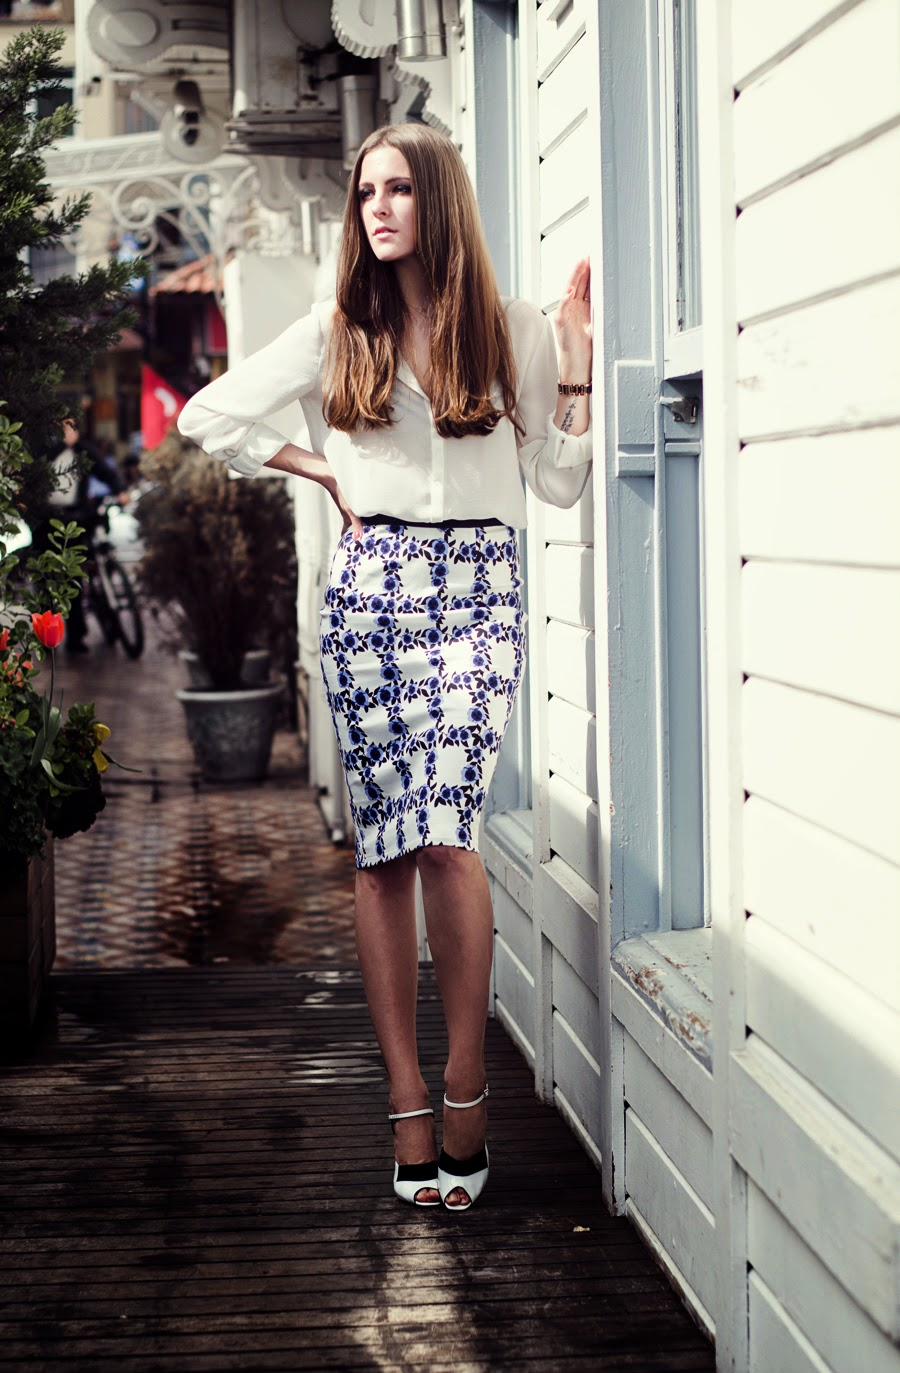 gasmy shop , fendi heels , istanbul streetstyle, russian fashion blogger , longhair, classy outfit, printed skirt outfit , mango skirt outfit